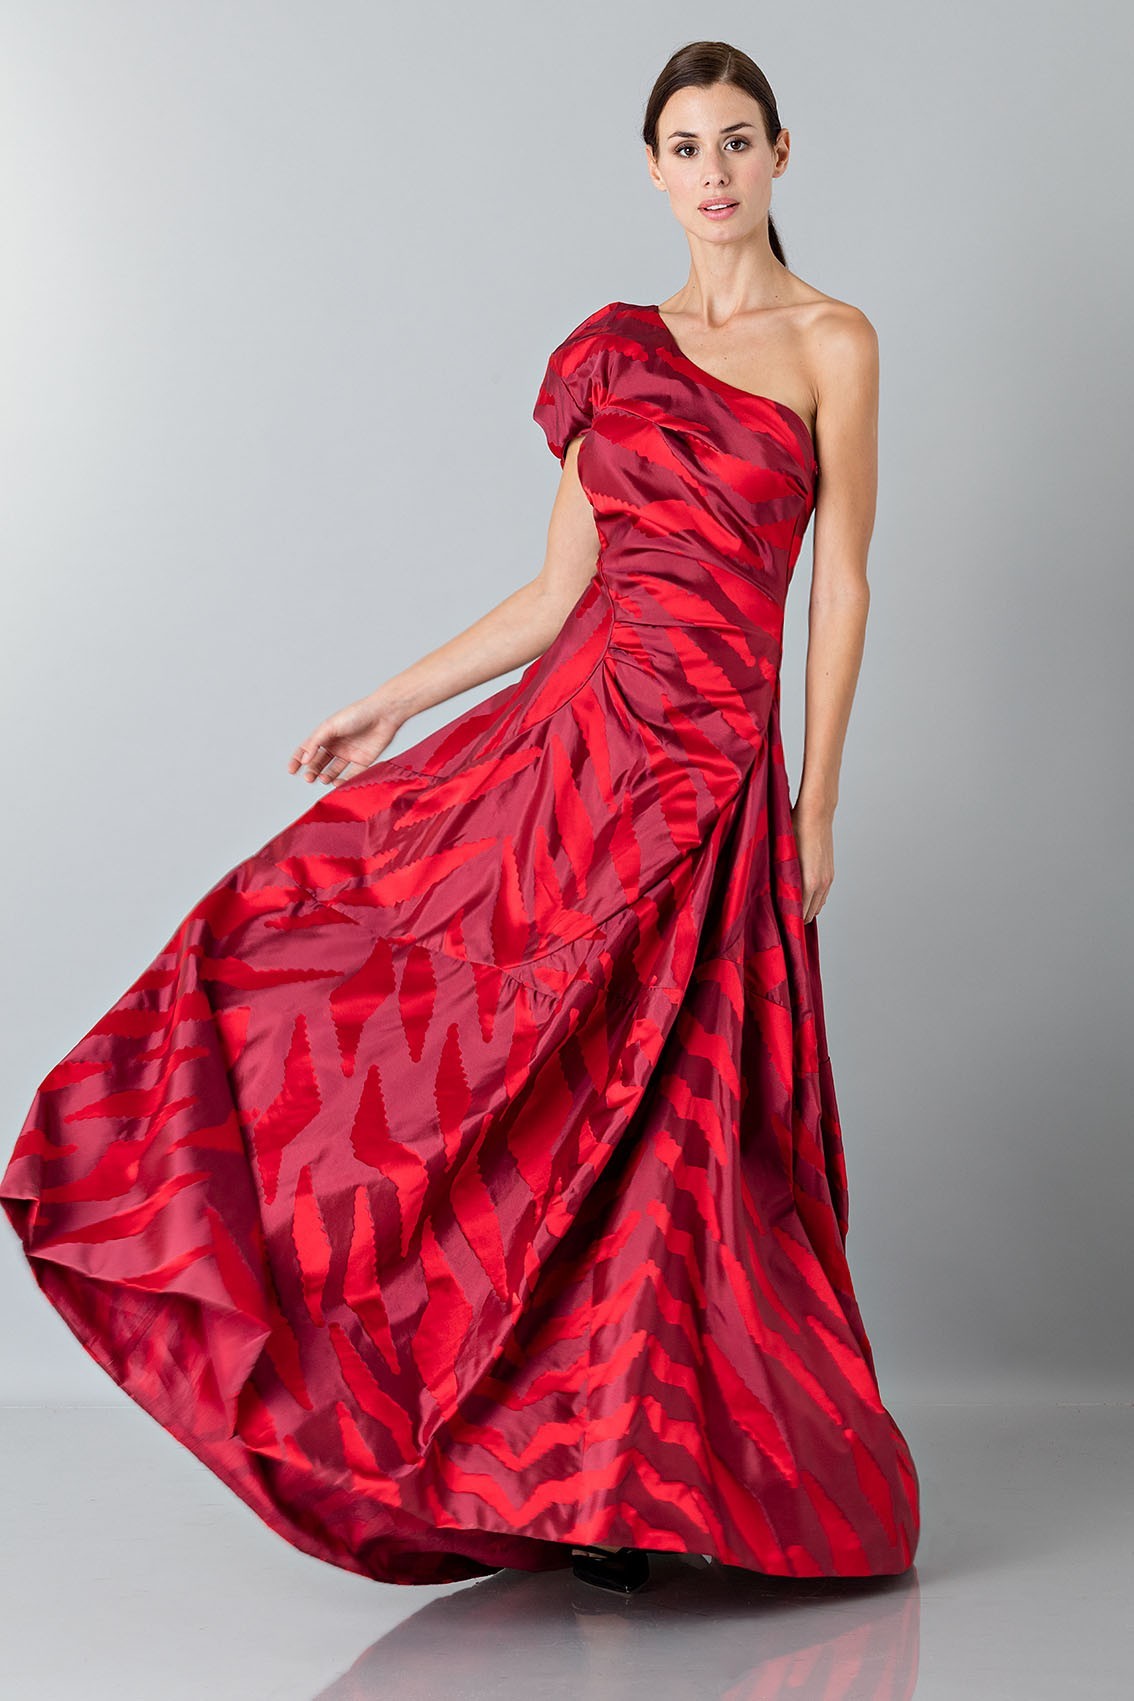 Buy a vivienne westwood dress one shoulder red dress for Vivienne westwood wedding dress price